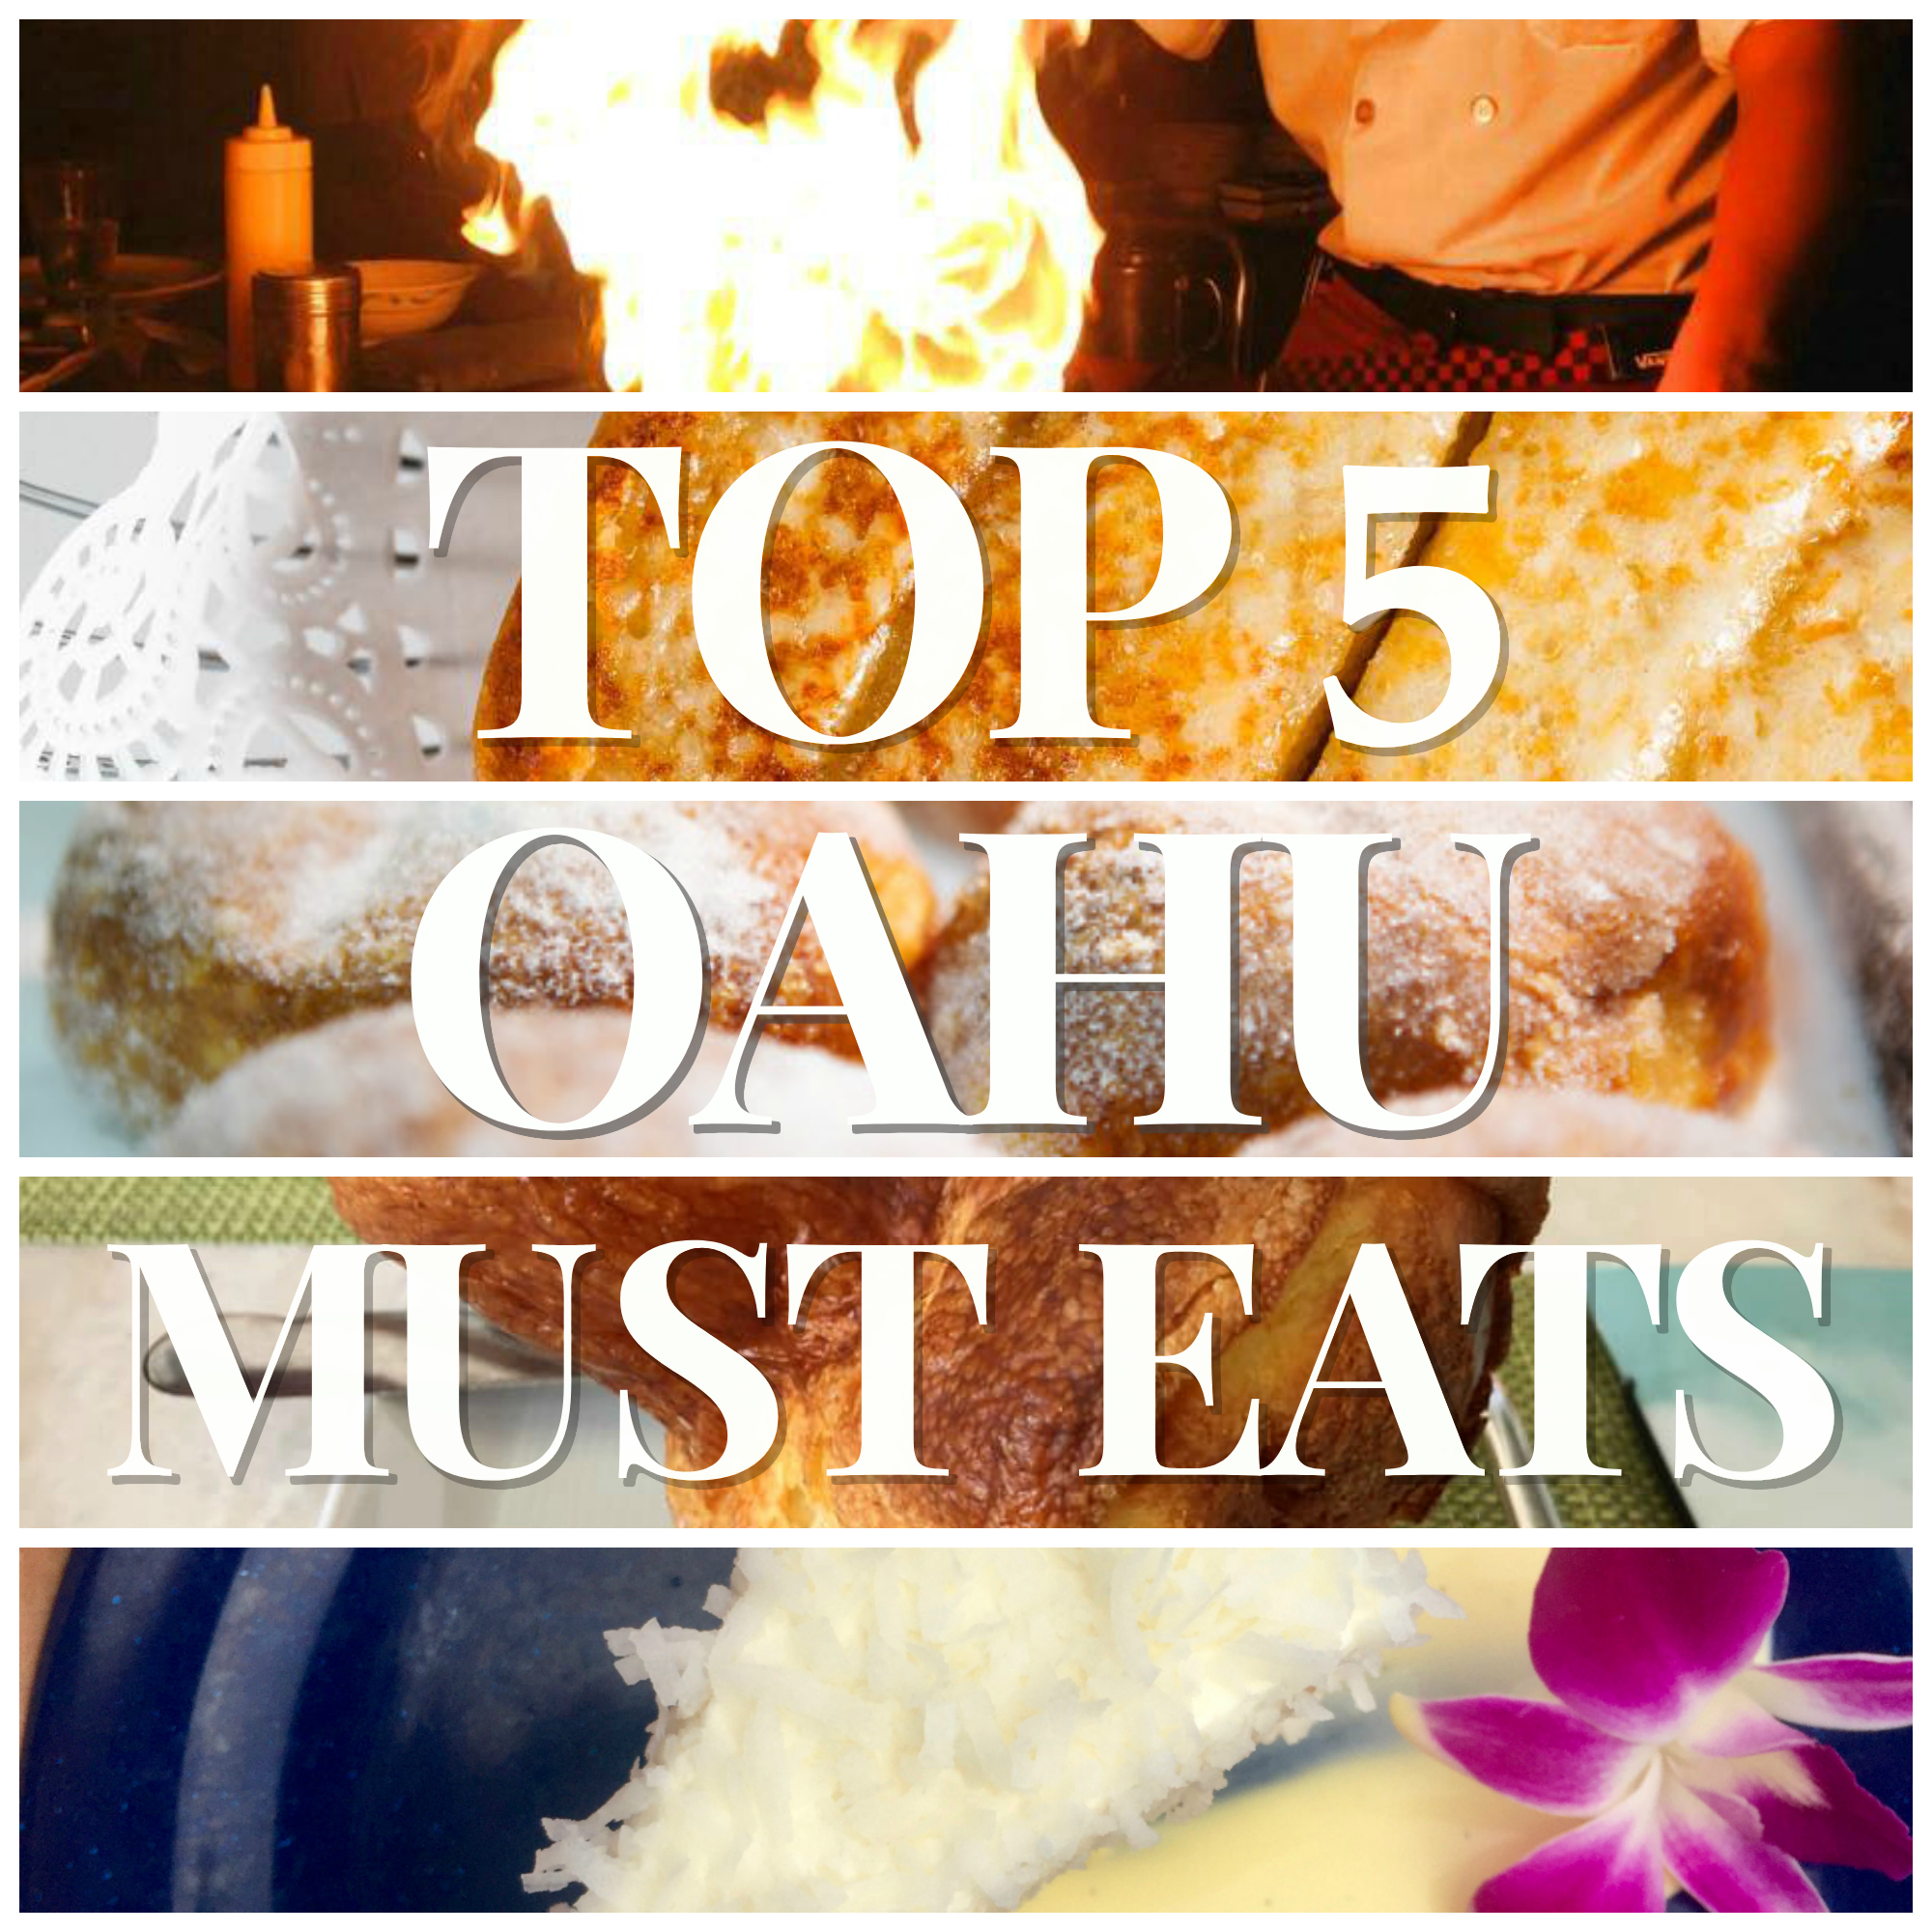 Nicole O'Neil's Top 5 Must Try Foods on the island of Oahu. Find out what the must eat items are in the Aloha State - from HY's incredible cheese toast to popovers with strawberry butter at Mariposa and Masaladas at Leonard's Bakery. Eat your way around the island with this delicious guide!